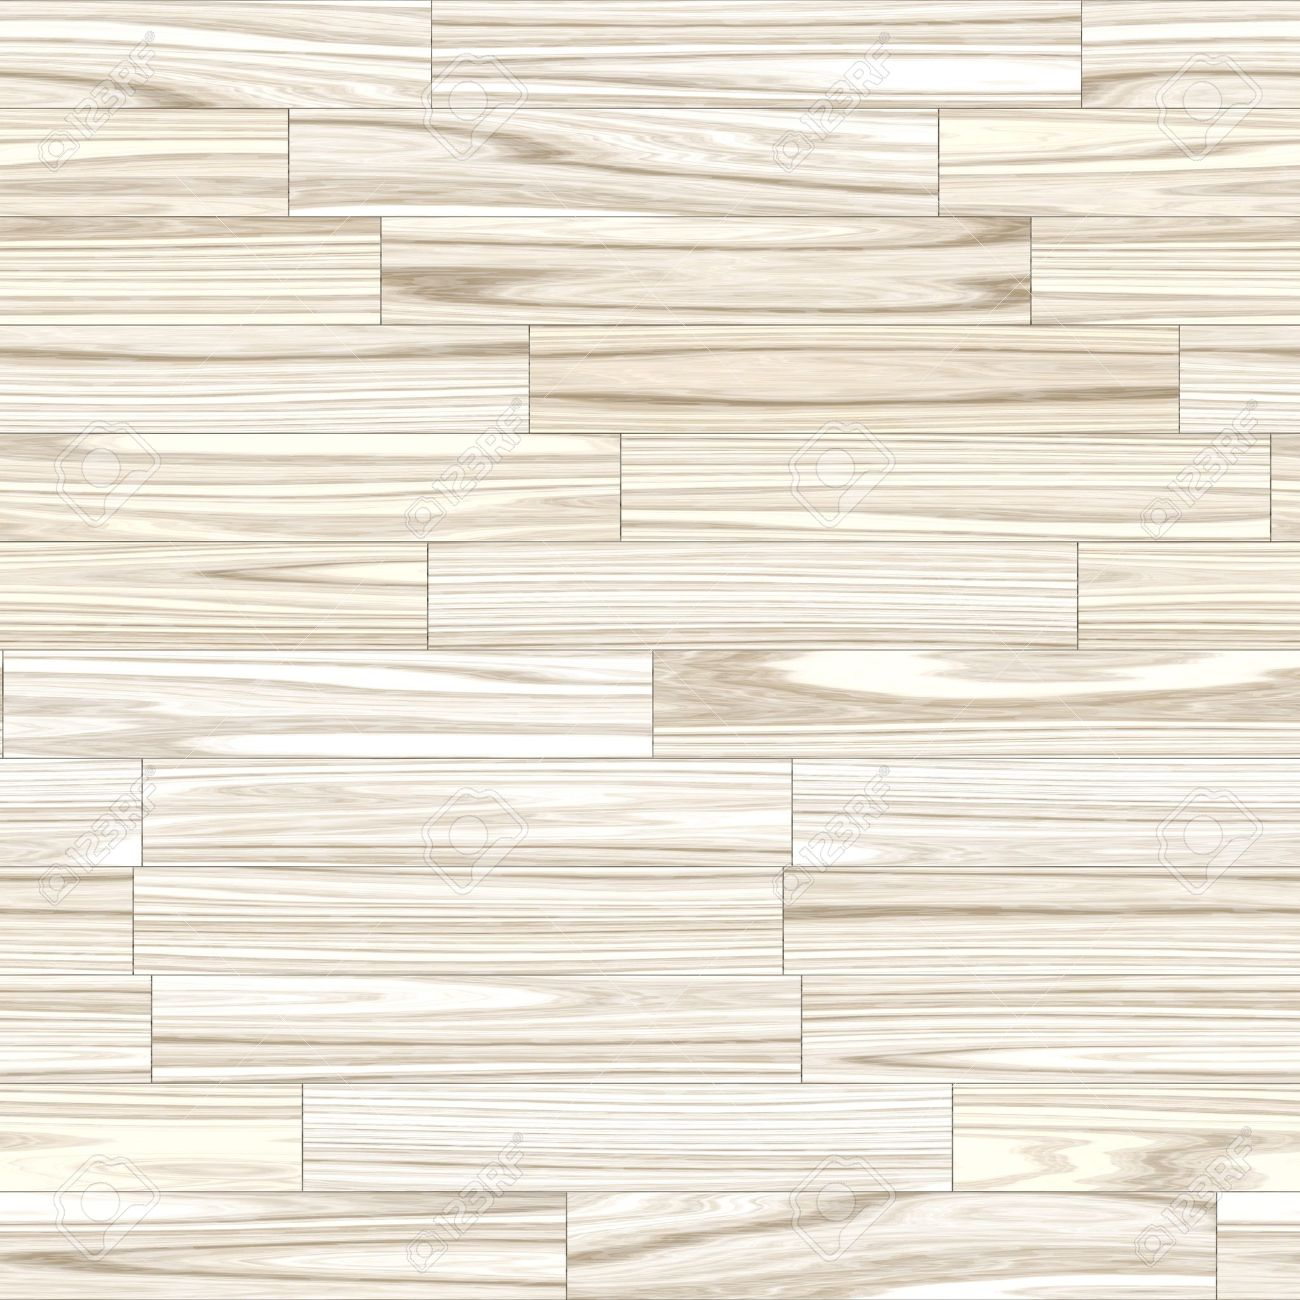 A modern style of light colored wood grain texture that tiles seamlessly as  a pattern. - A Modern Style Of Light Colored Wood Grain Texture That Tiles